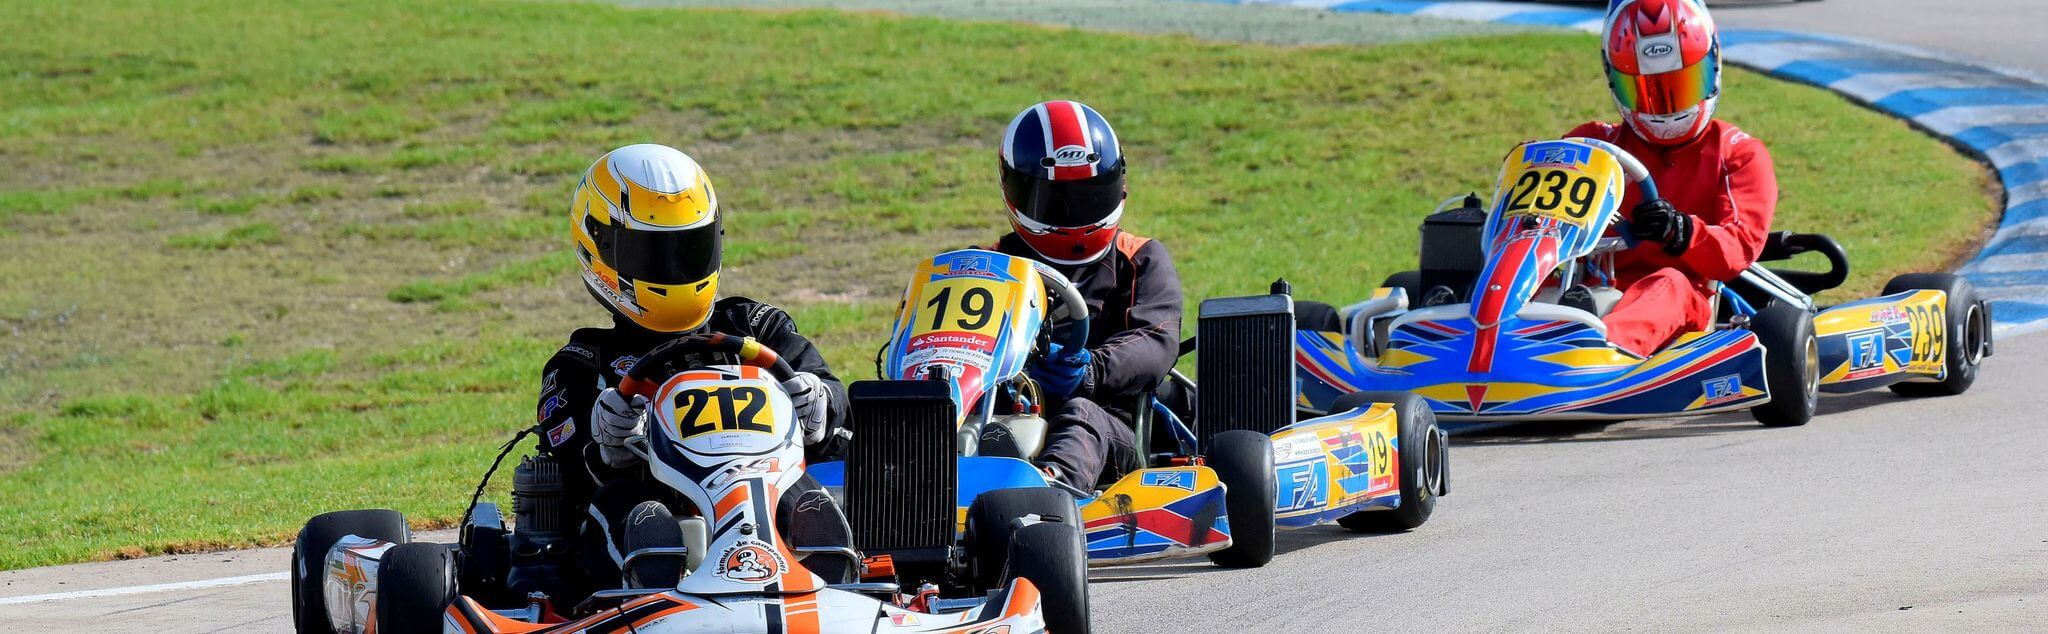 Karting in Xeresa